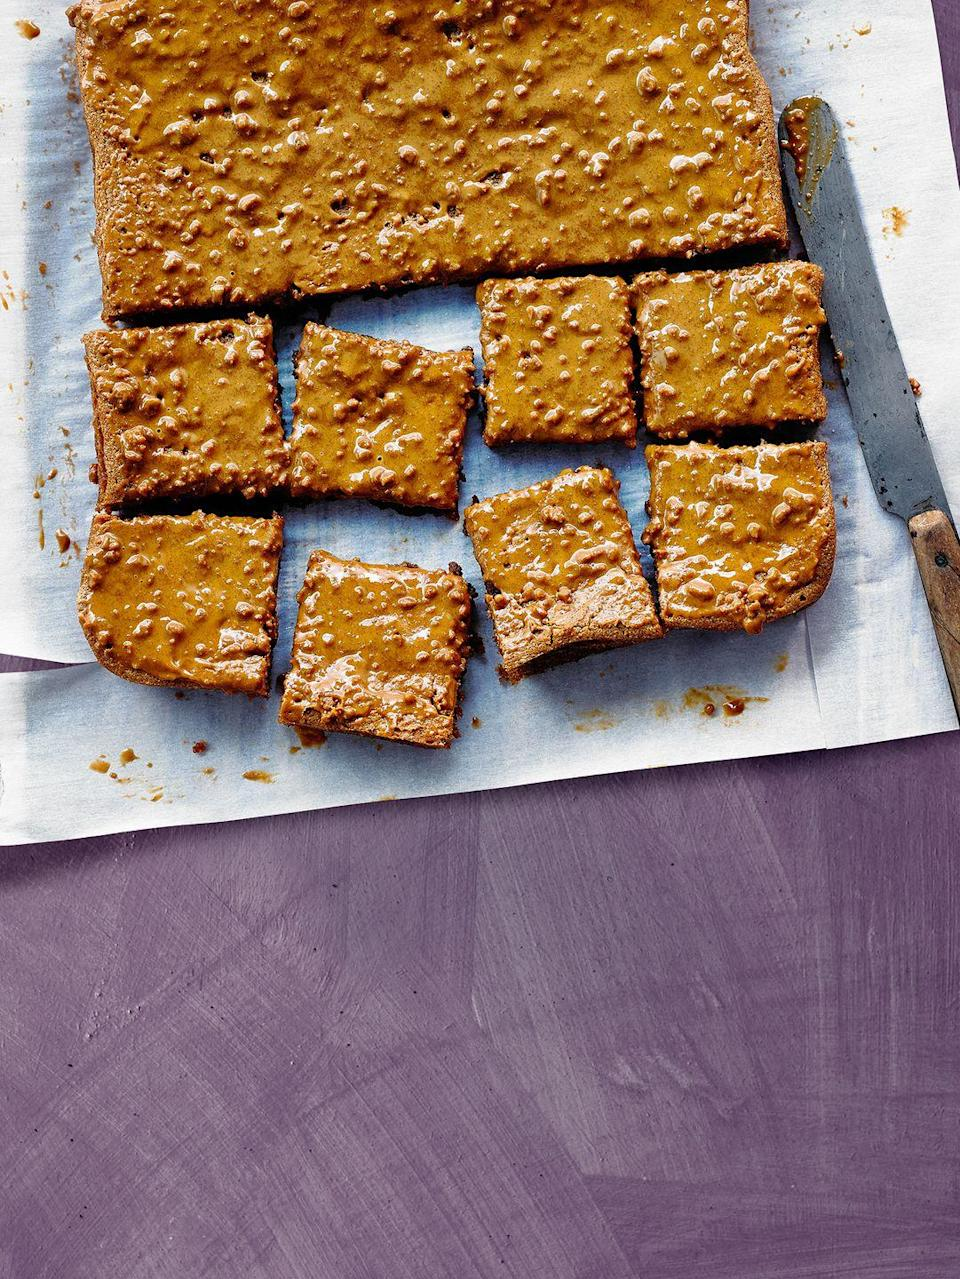 """<p>Sounds crazy, but this tray bake cake is probably the simplest bake you'll ever make - and it only has three ingredients! A super easy Biscoff recipe. </p><p><strong>Recipe: <a href=""""https://www.goodhousekeeping.com/uk/food/recipes/a26943194/biscoff-traybake/"""" rel=""""nofollow noopener"""" target=""""_blank"""" data-ylk=""""slk:Three-ingredient Biscoff tray bake"""" class=""""link rapid-noclick-resp"""">Three-ingredient Biscoff tray bake</a></strong></p>"""